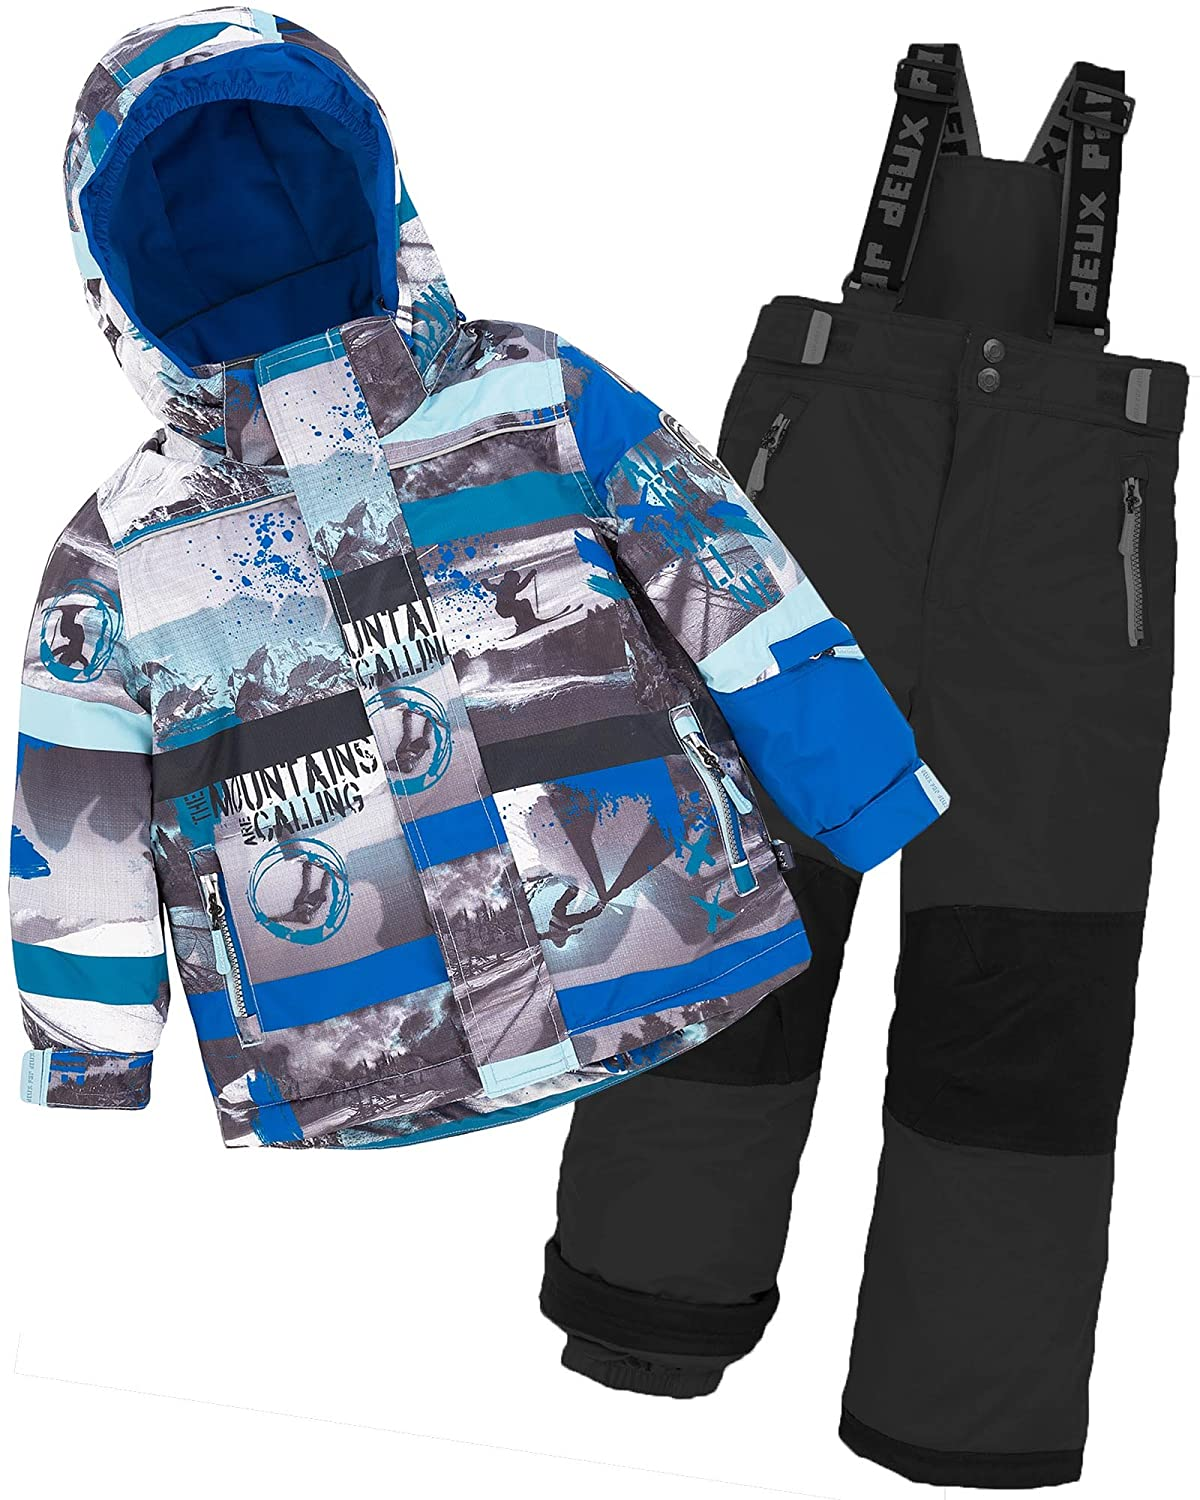 Deux par Deux Boys' 2-Piece Snowsuit Mountains are Calling Black, Sizes 4-14 Sizes 4-14 - 14